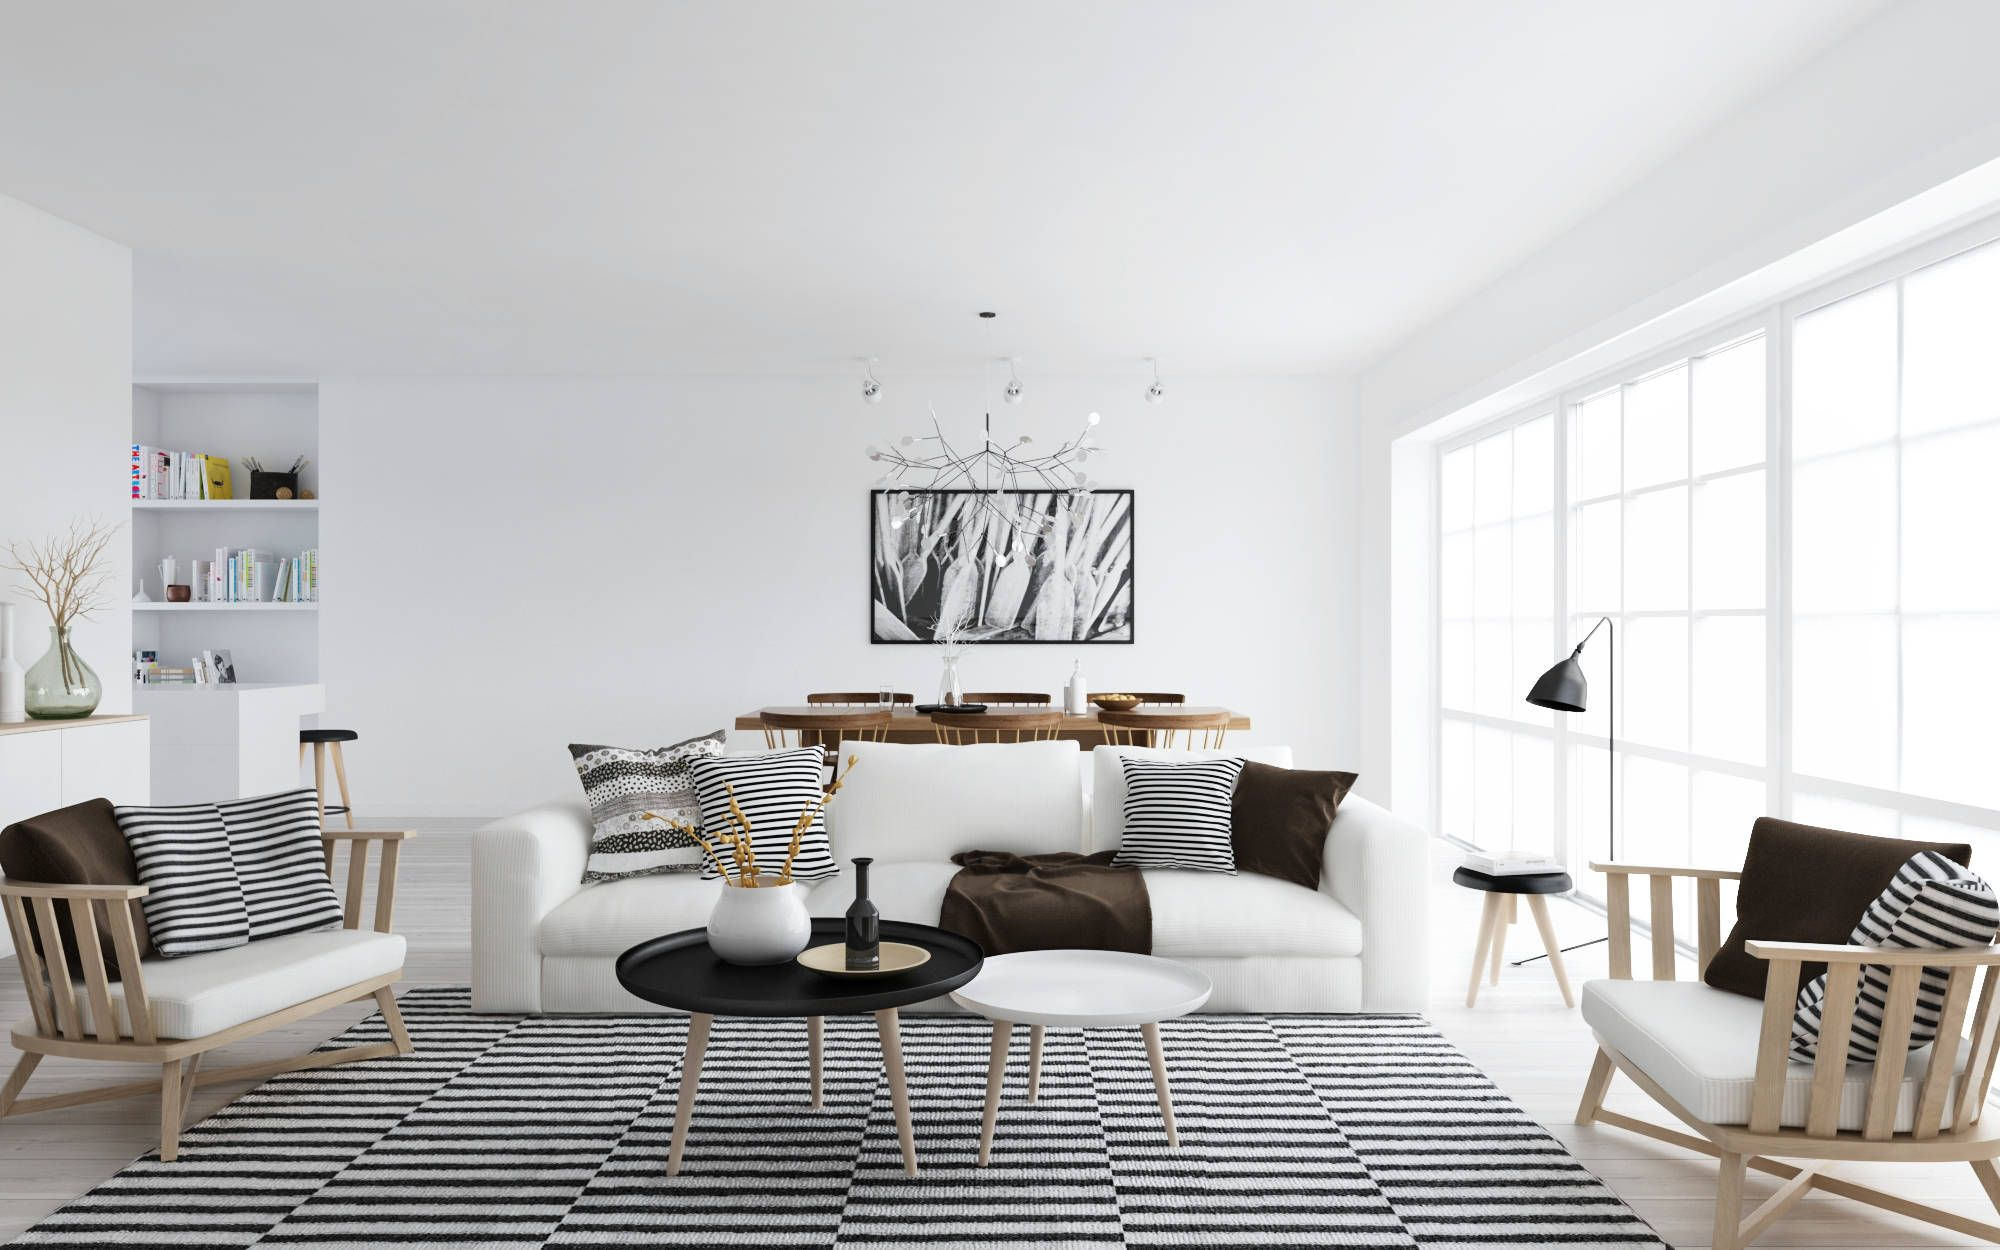 Nordic Interior Design Living Room Scandinavian Nordic Interior Design Scandinavian Interior Design